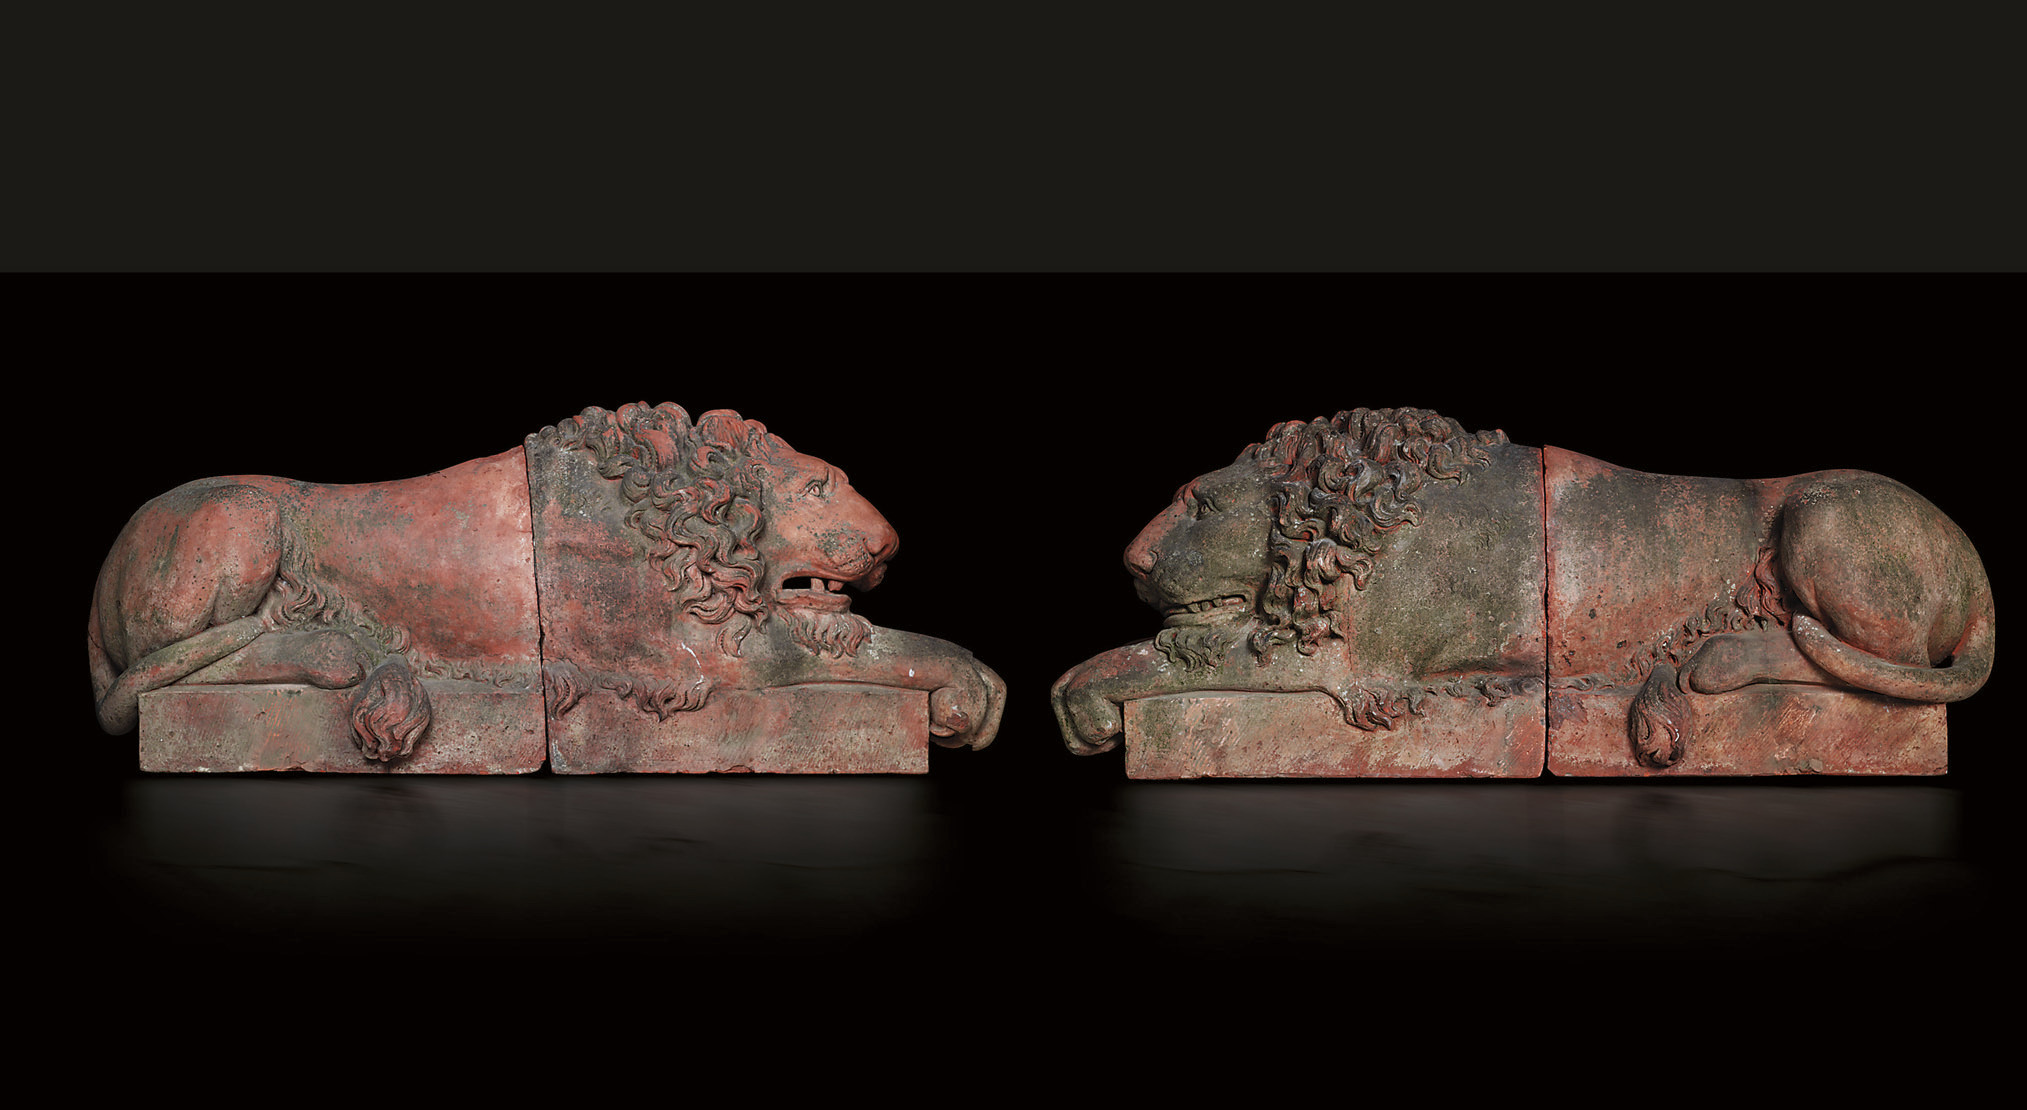 A PAIR OF RECLINING TERRACOTTA LIONS